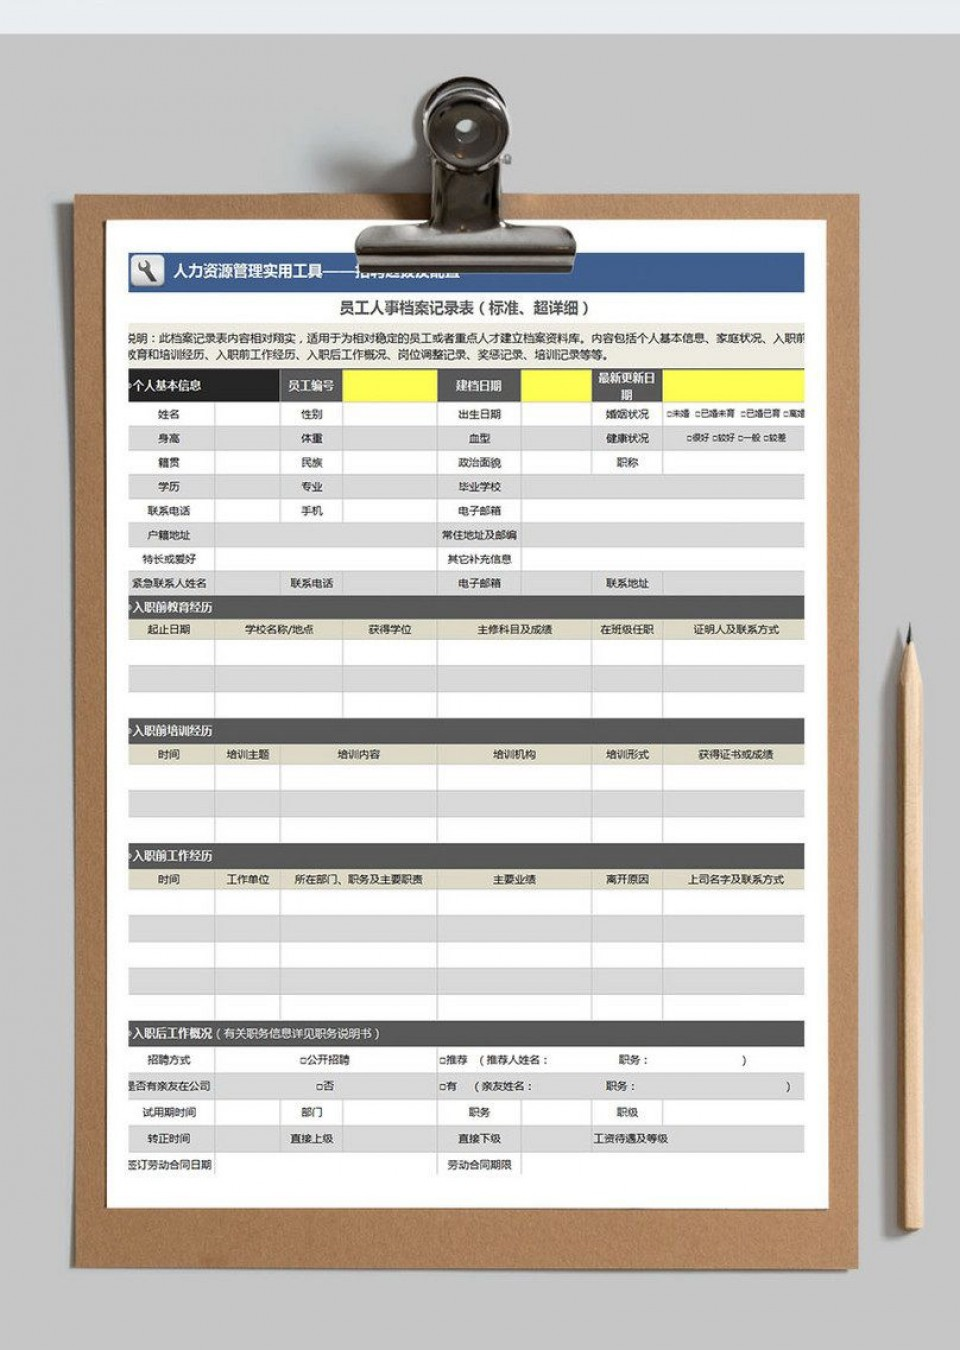 002 Unforgettable Employee Personnel File Template Picture  Uk Excel Form960